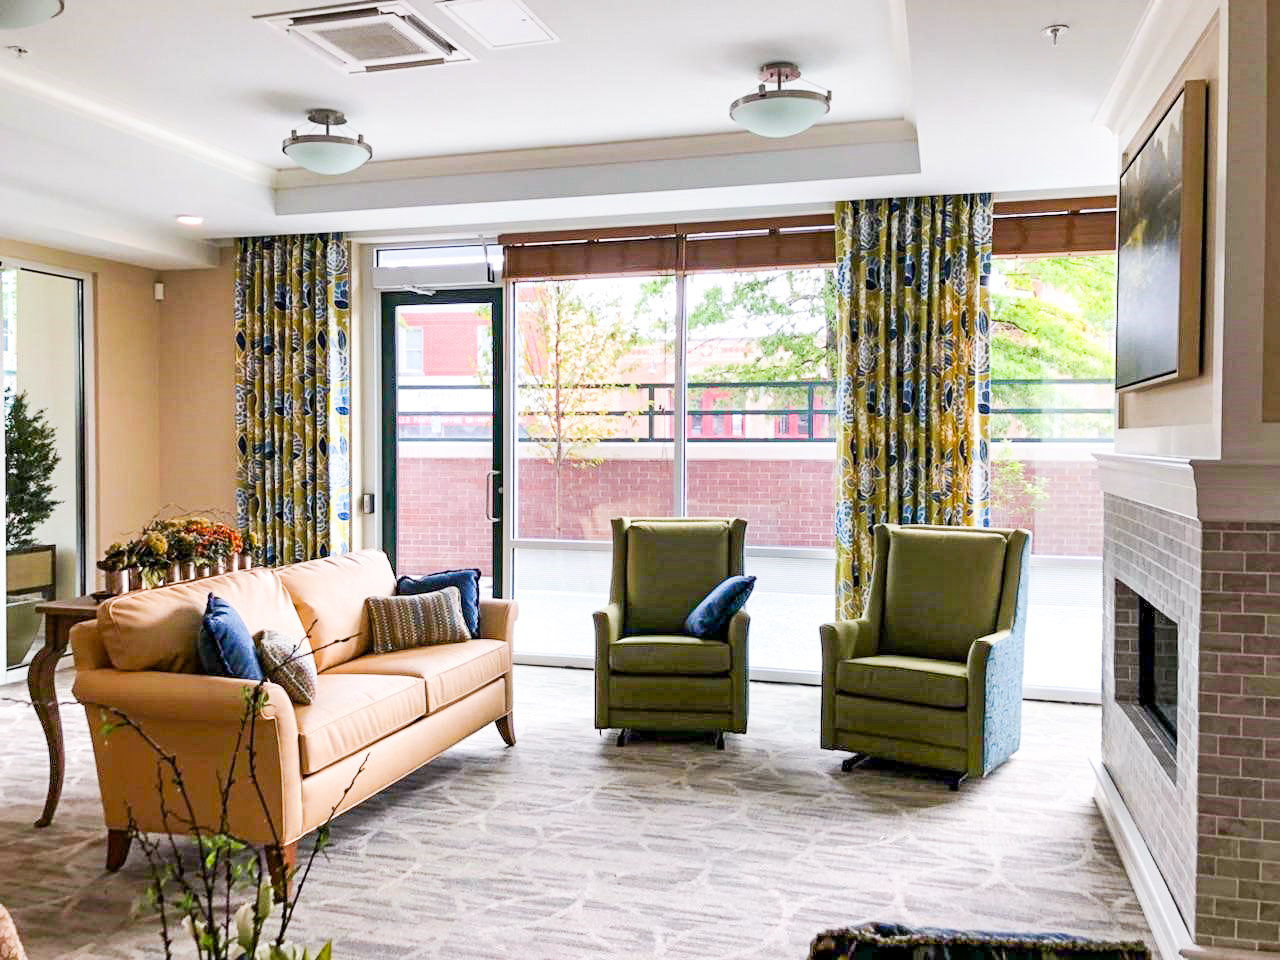 Washington DC Senior Living facility lounge fireside area